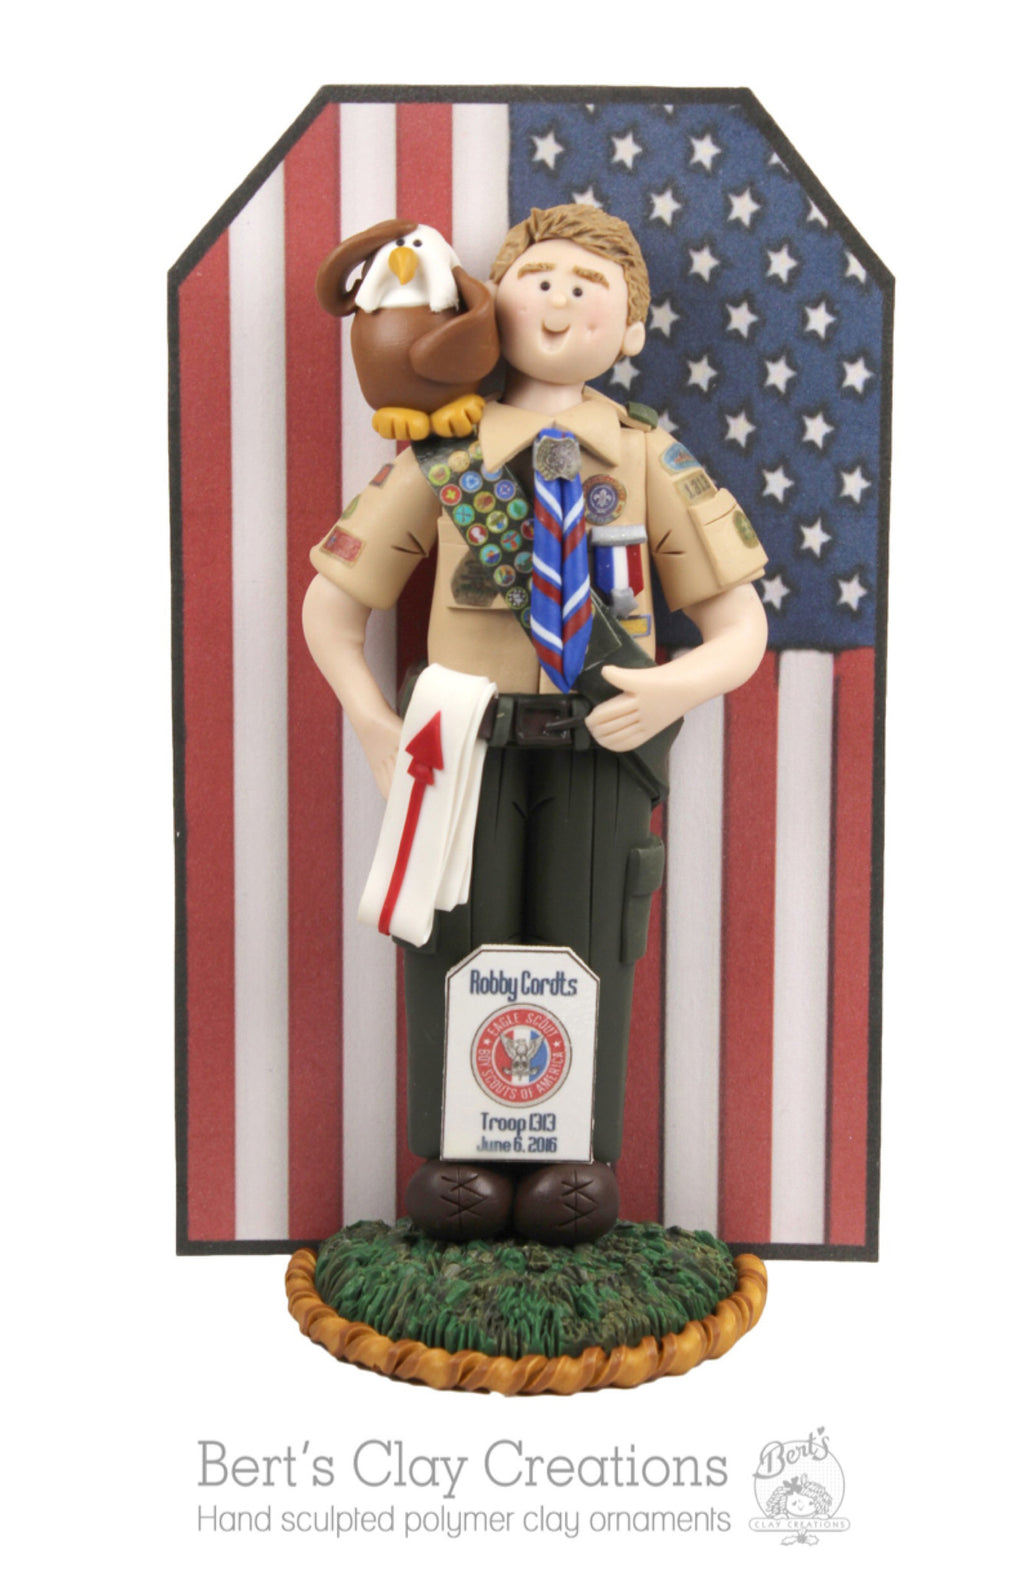 CUSTOM Eagle Scout Cake Topper AND Ornament Hybrid Submission Quote - Bert's Clay Creations